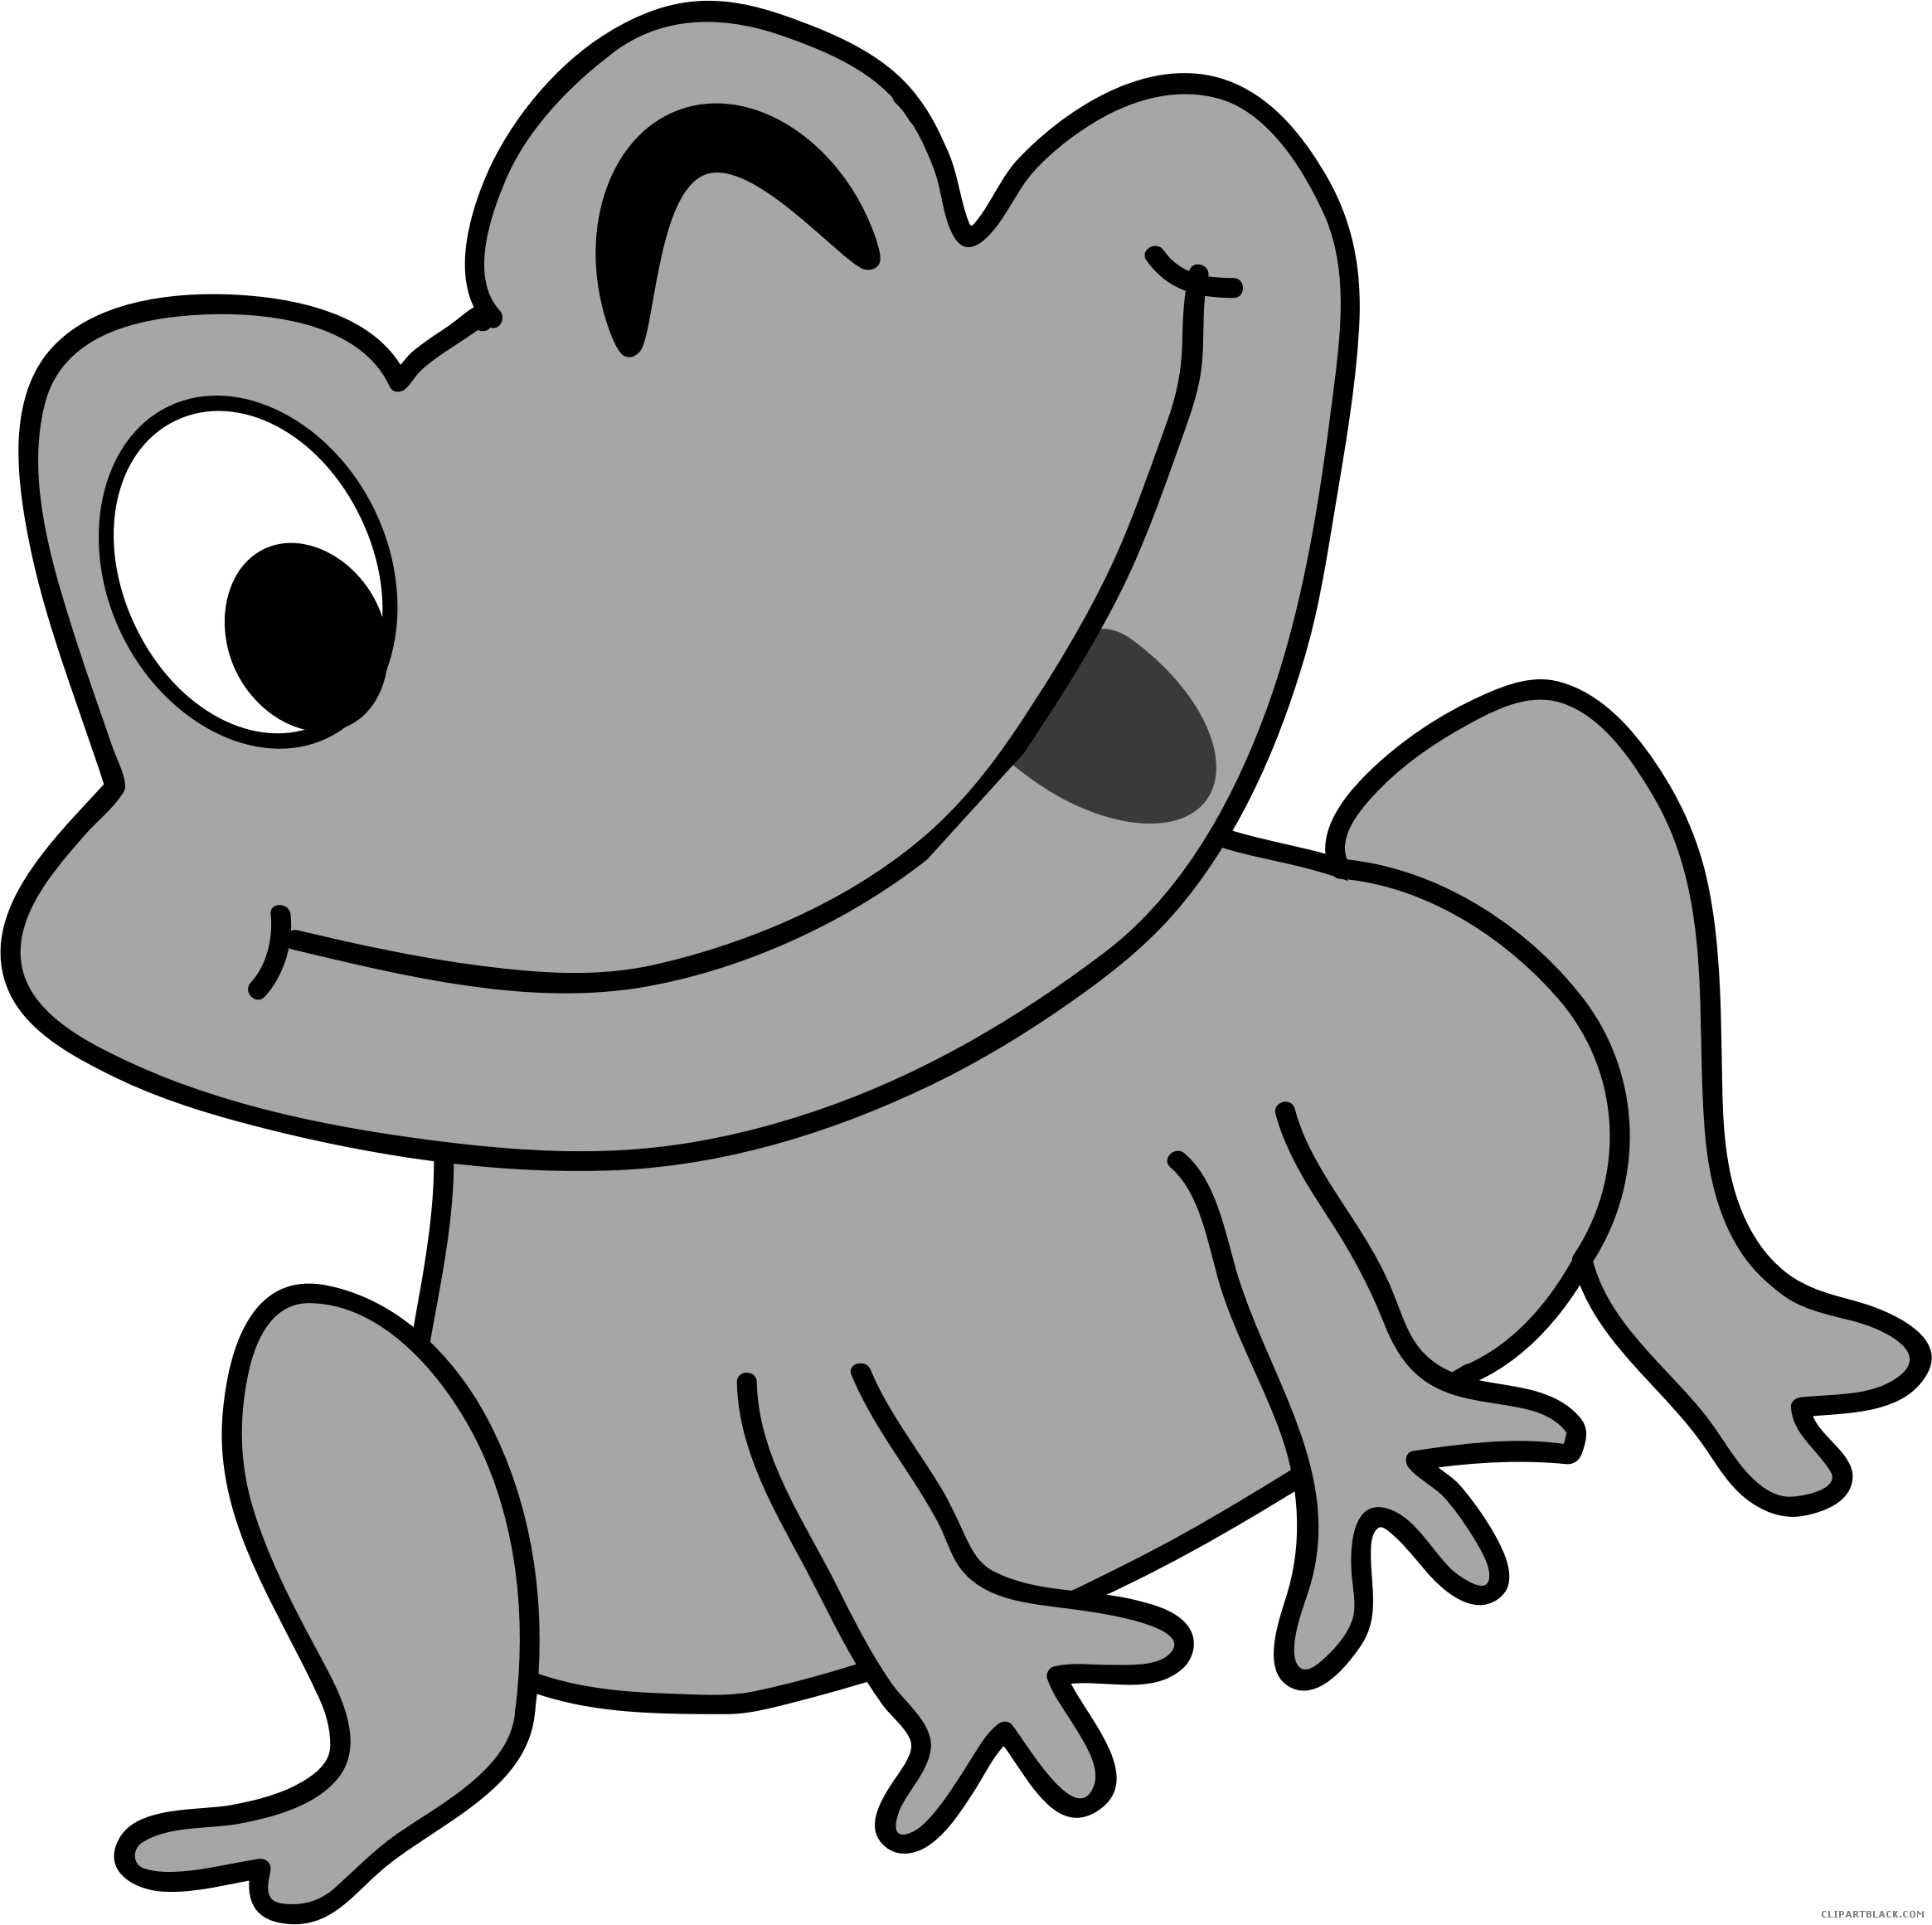 Grayscale page of clipartblack. Frog clipart black and white